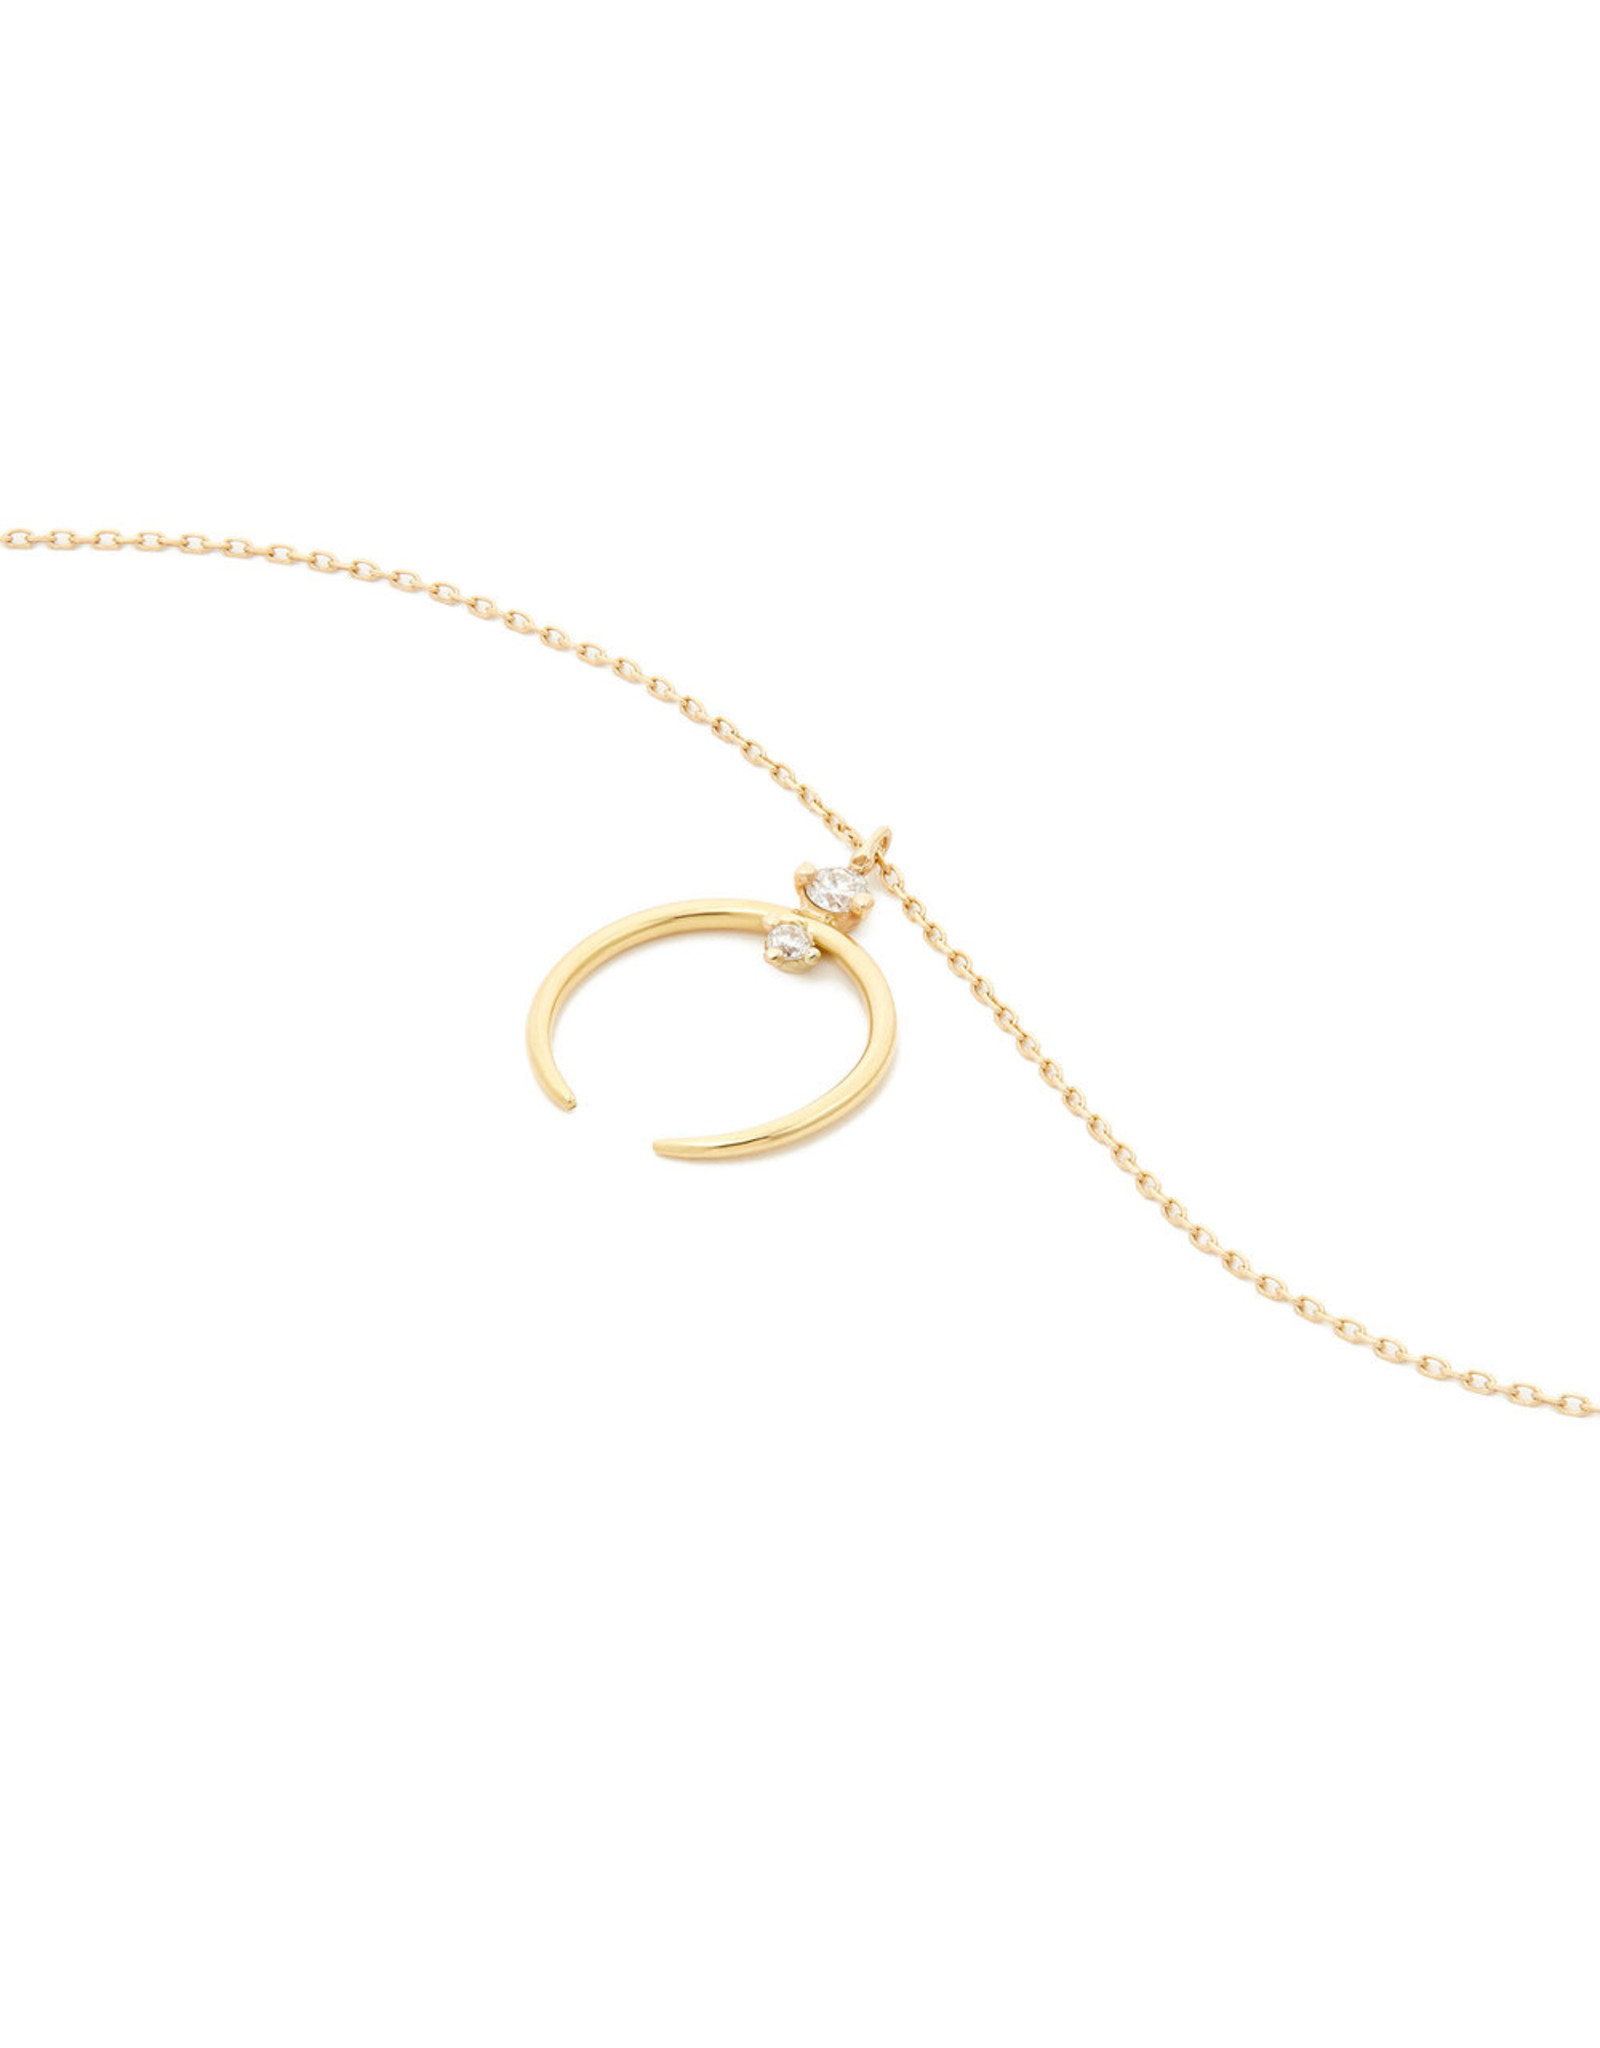 Sophie Ratner Sophie Ratner Crescent Yellow-Gold Pendant Necklace - Yellow Gold / White Diamonds